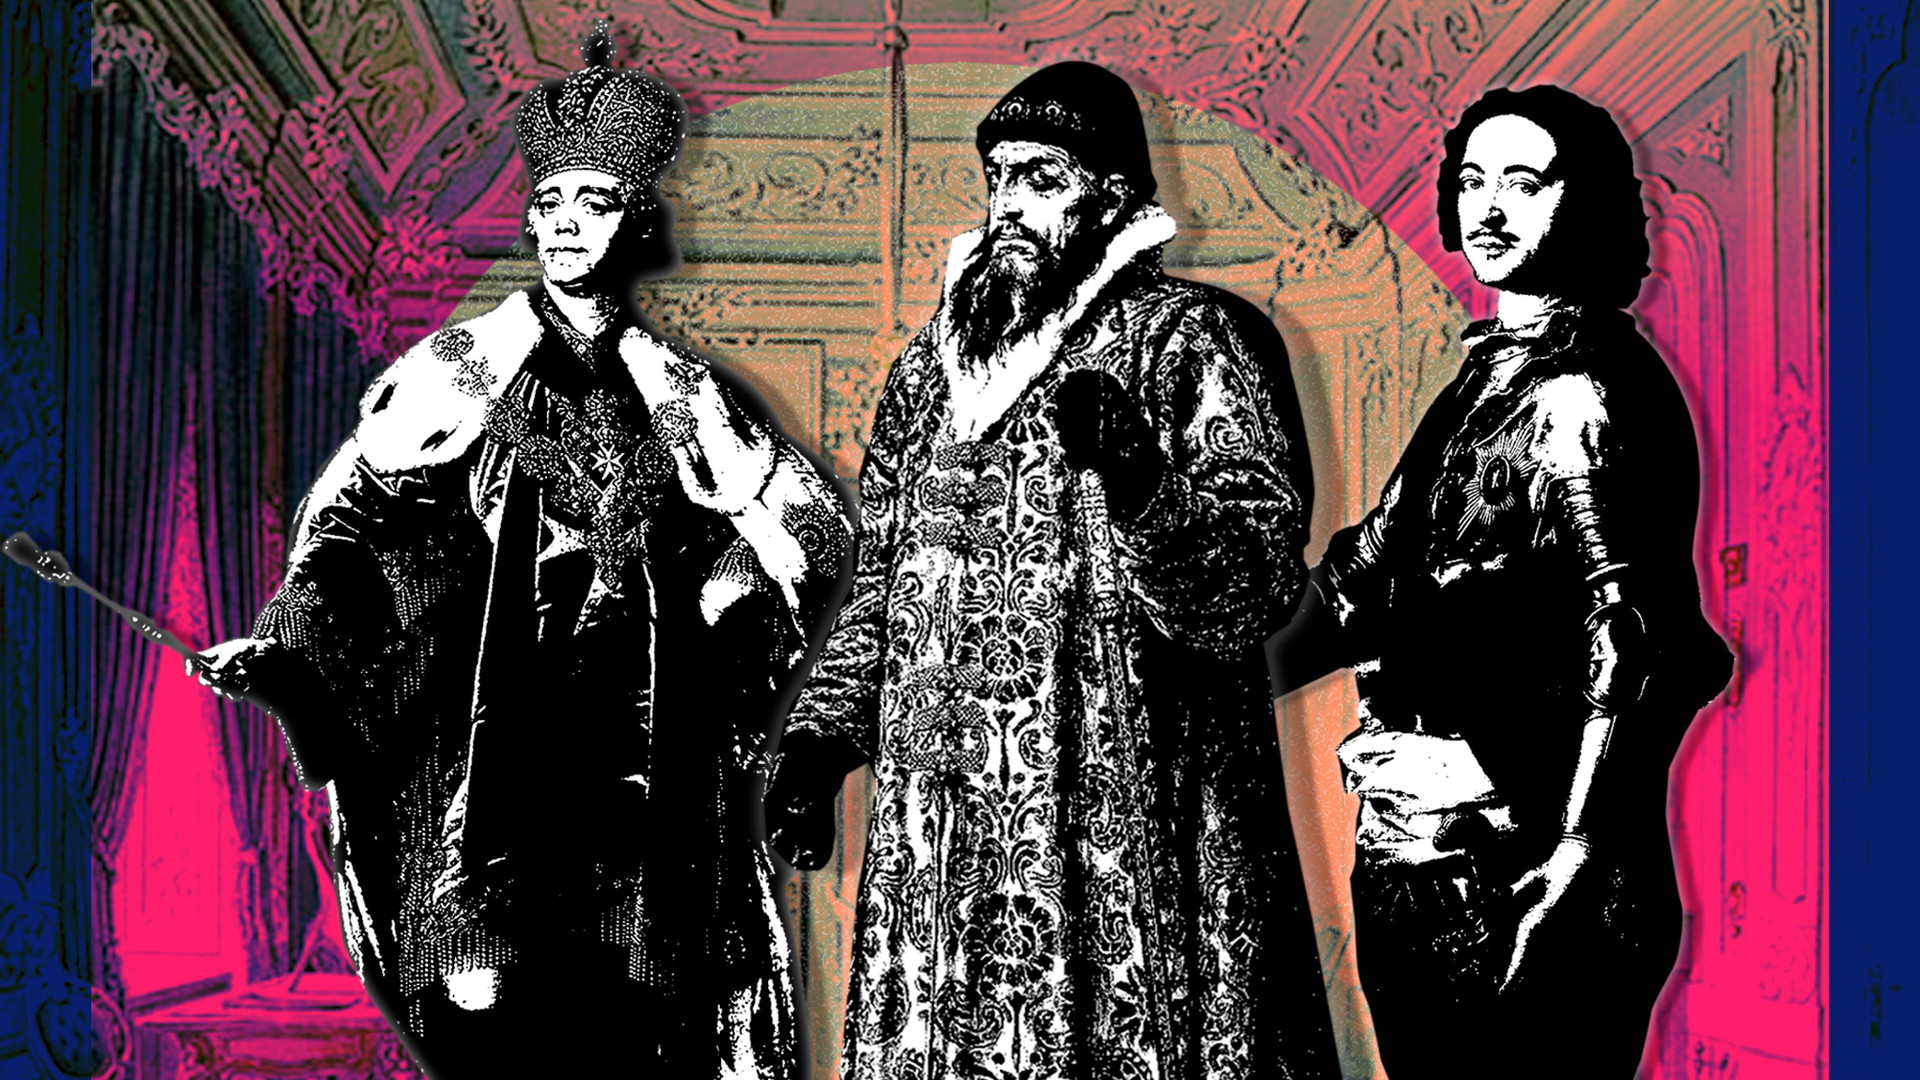 The madness of 3 Russian tsars, and the truth behind it